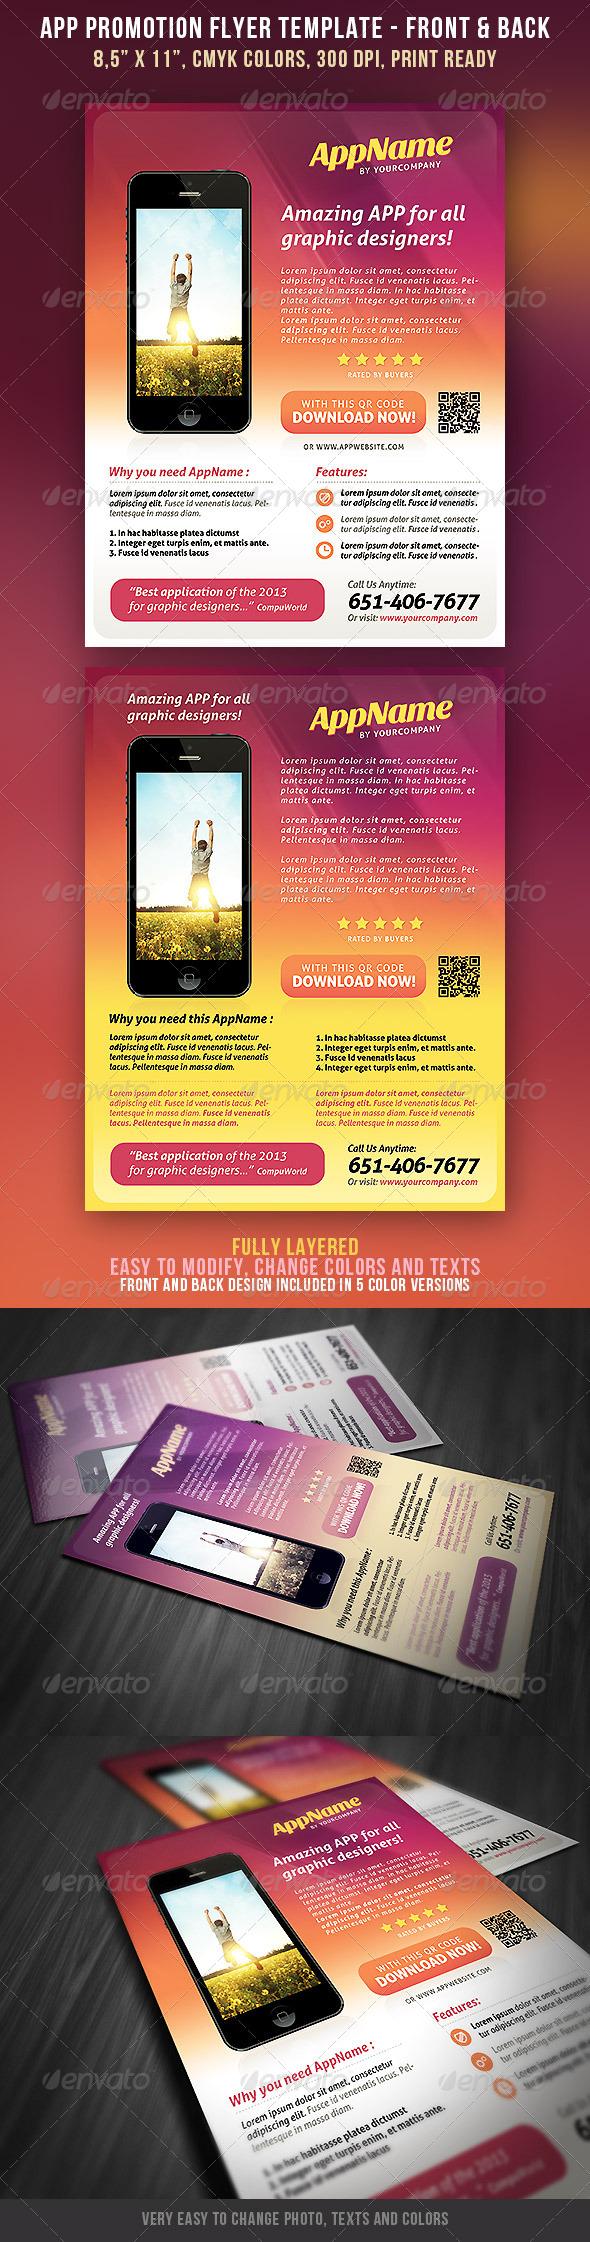 App Promotion Flyer 2 - Commerce Flyers